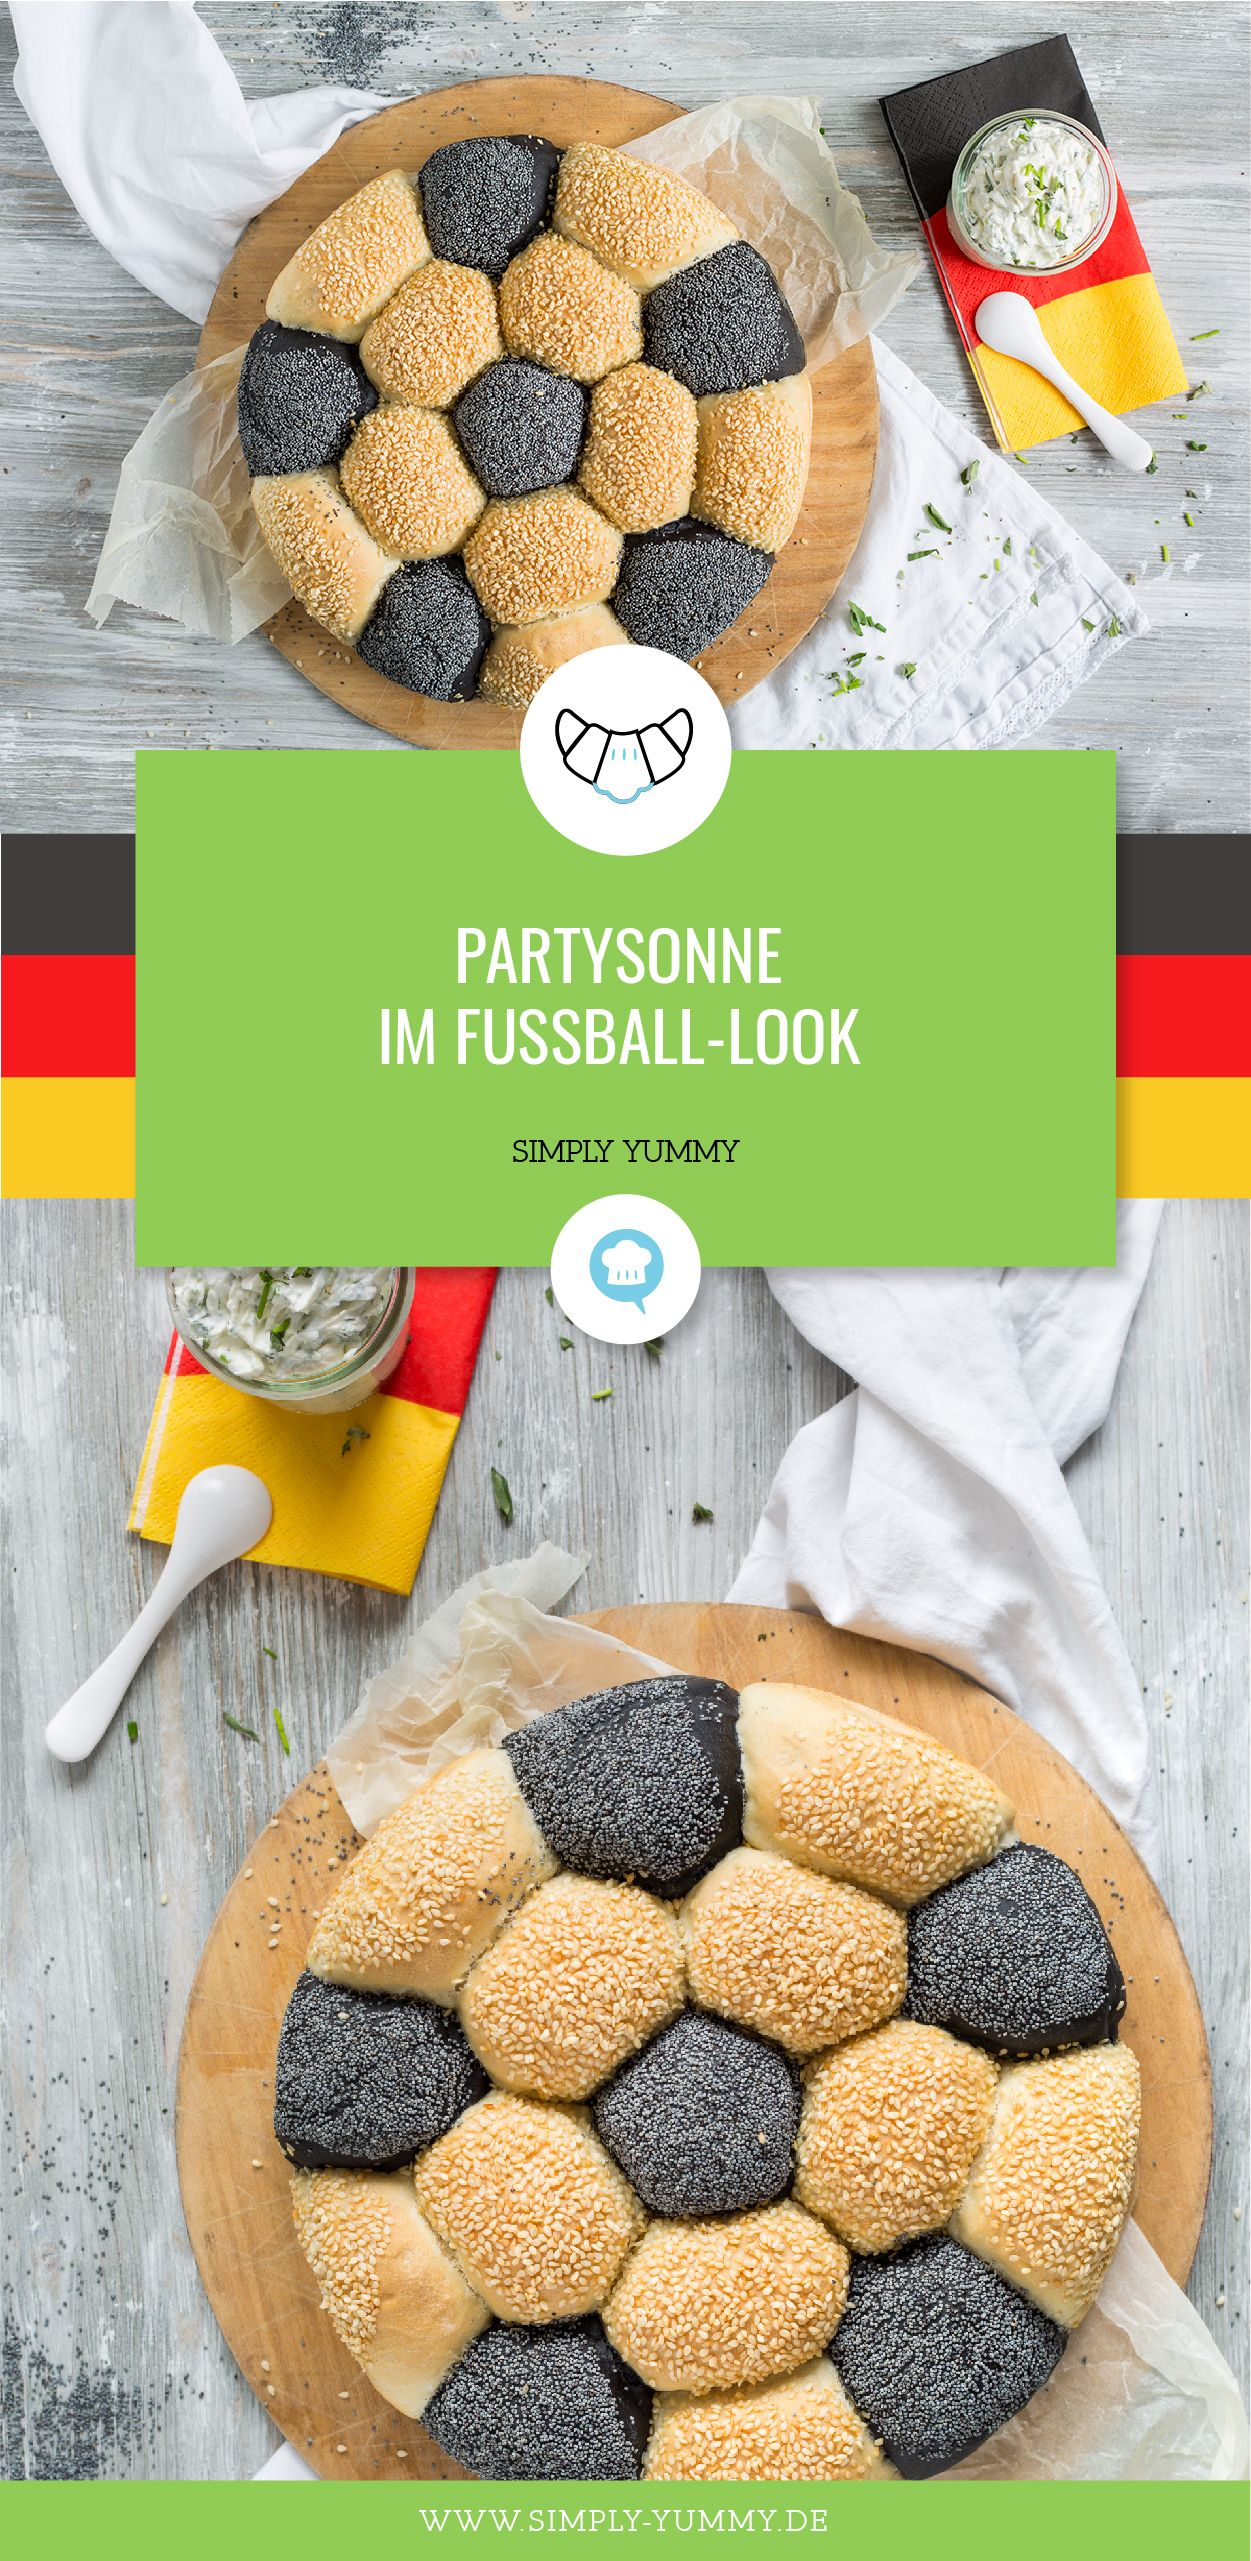 Photo of Partysonne im Fußball-Look